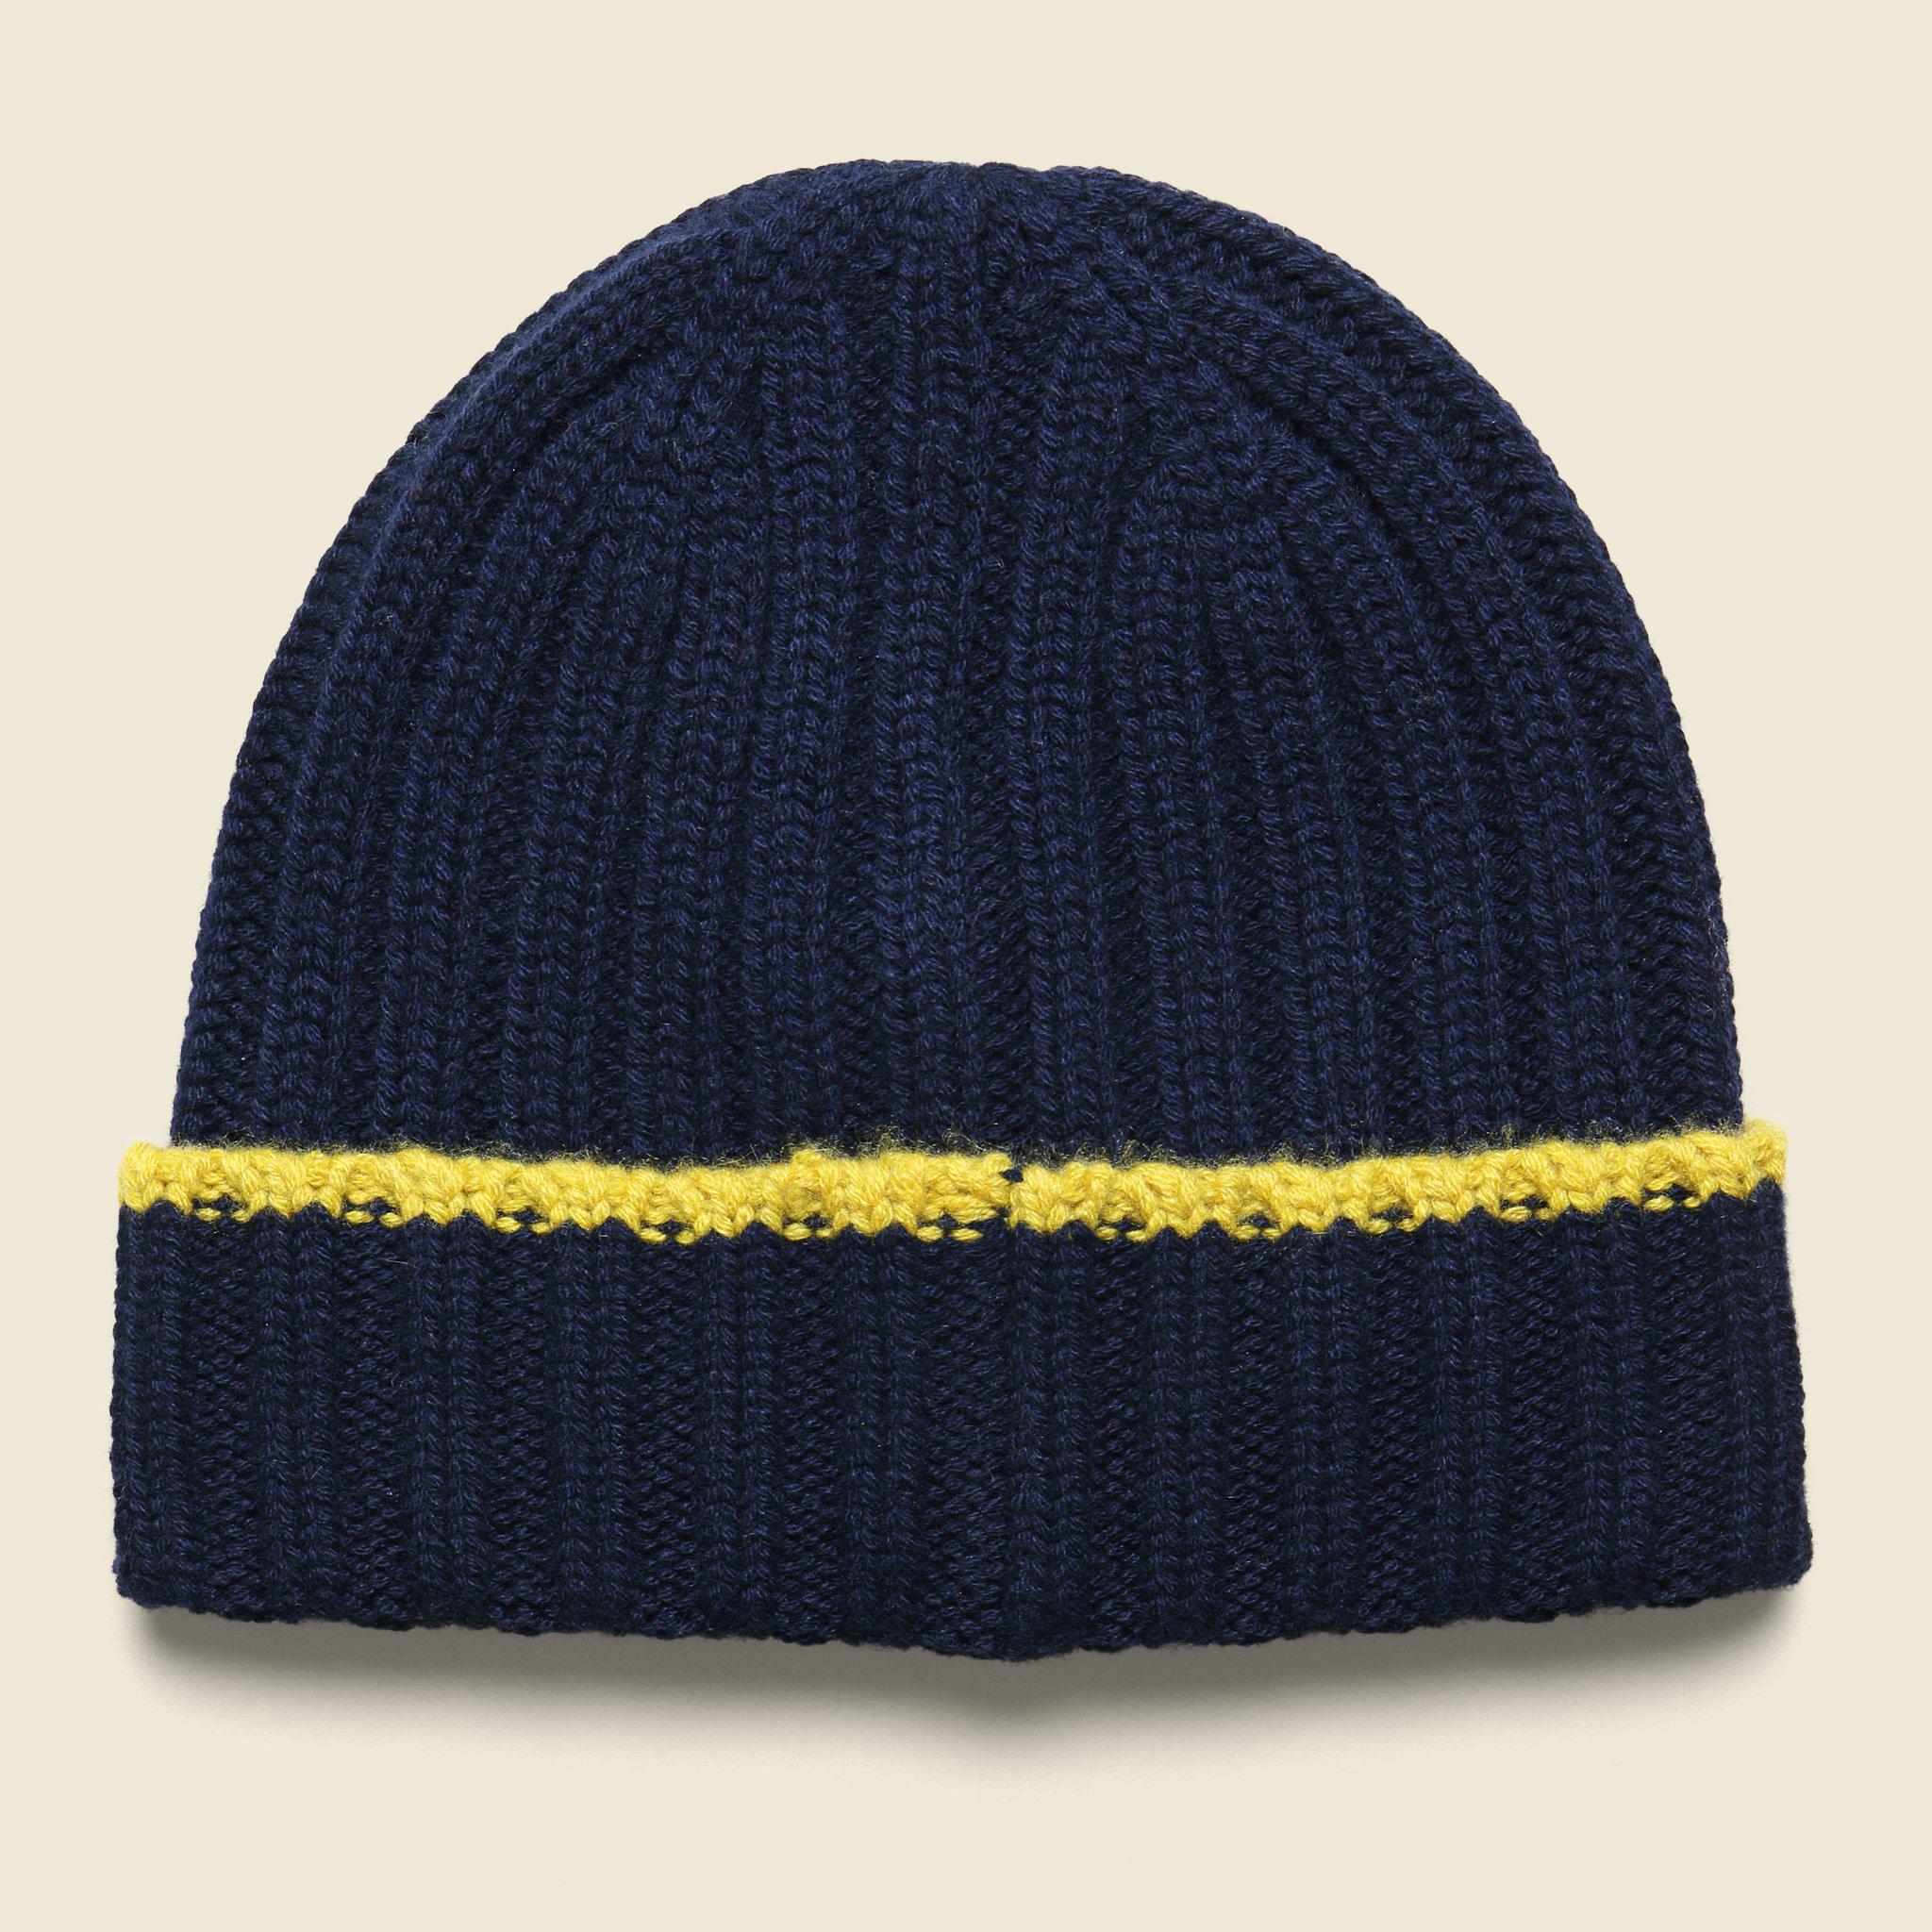 Lyst - Alex Mill Cashmere Rib Tipping Beanie - Navy yellow in Blue ... 14d39841973f